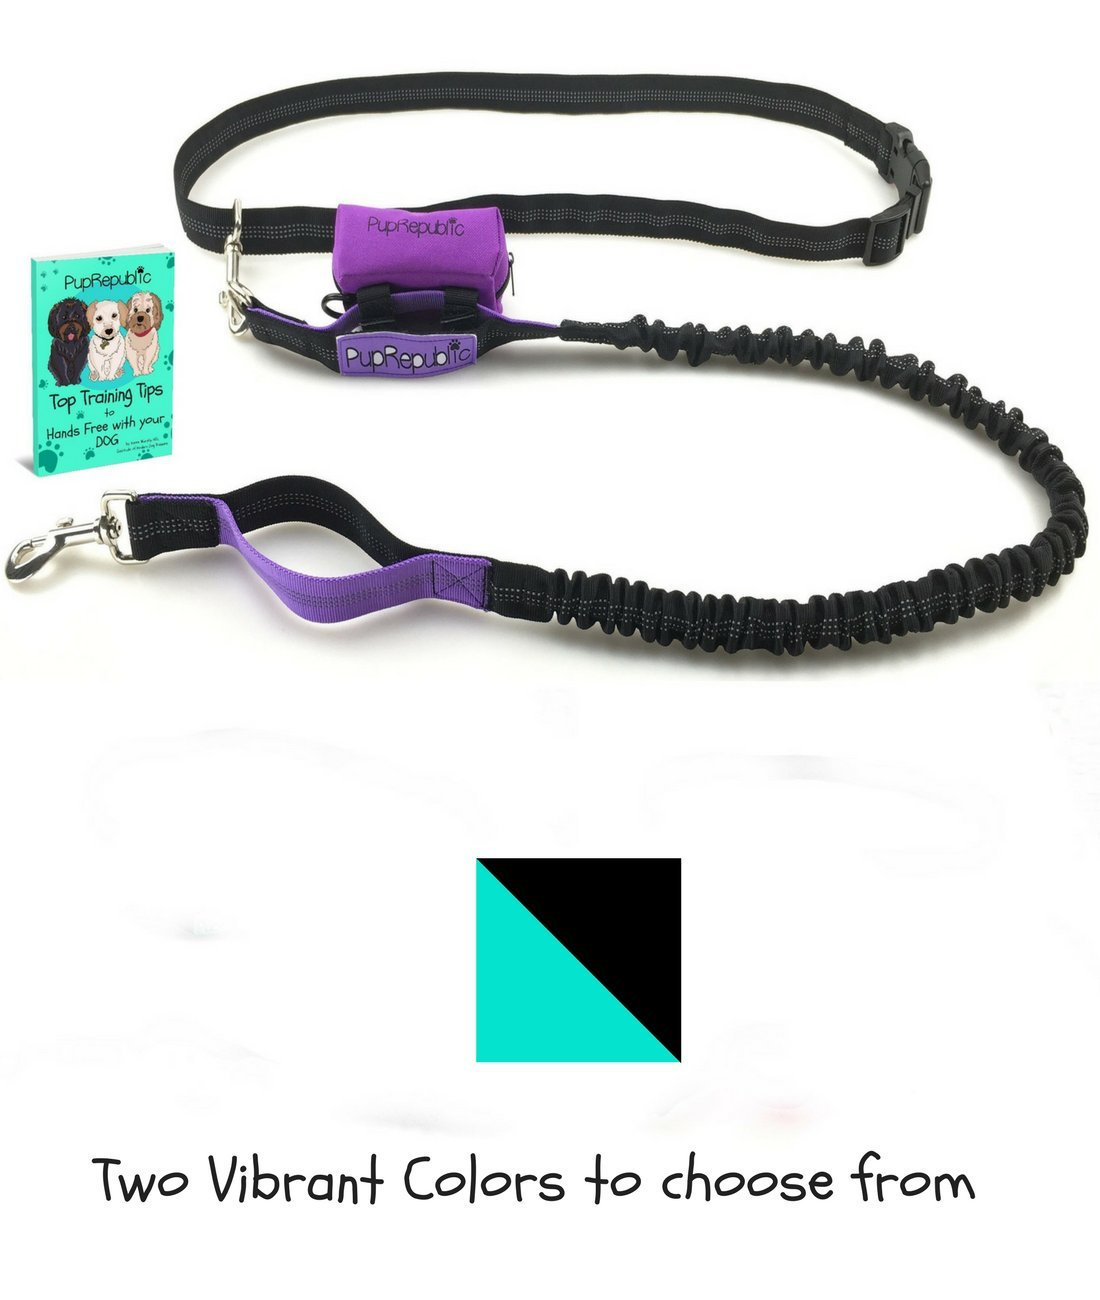 PupRepublic Hands Free Dog Running Leash with FREE Poop Bag Holder for Walking Jogging Hiking FREE EBook by Top Trainer Reflective 4ft-5ft Bungee 27-48 inch Waist 100% Guarantee